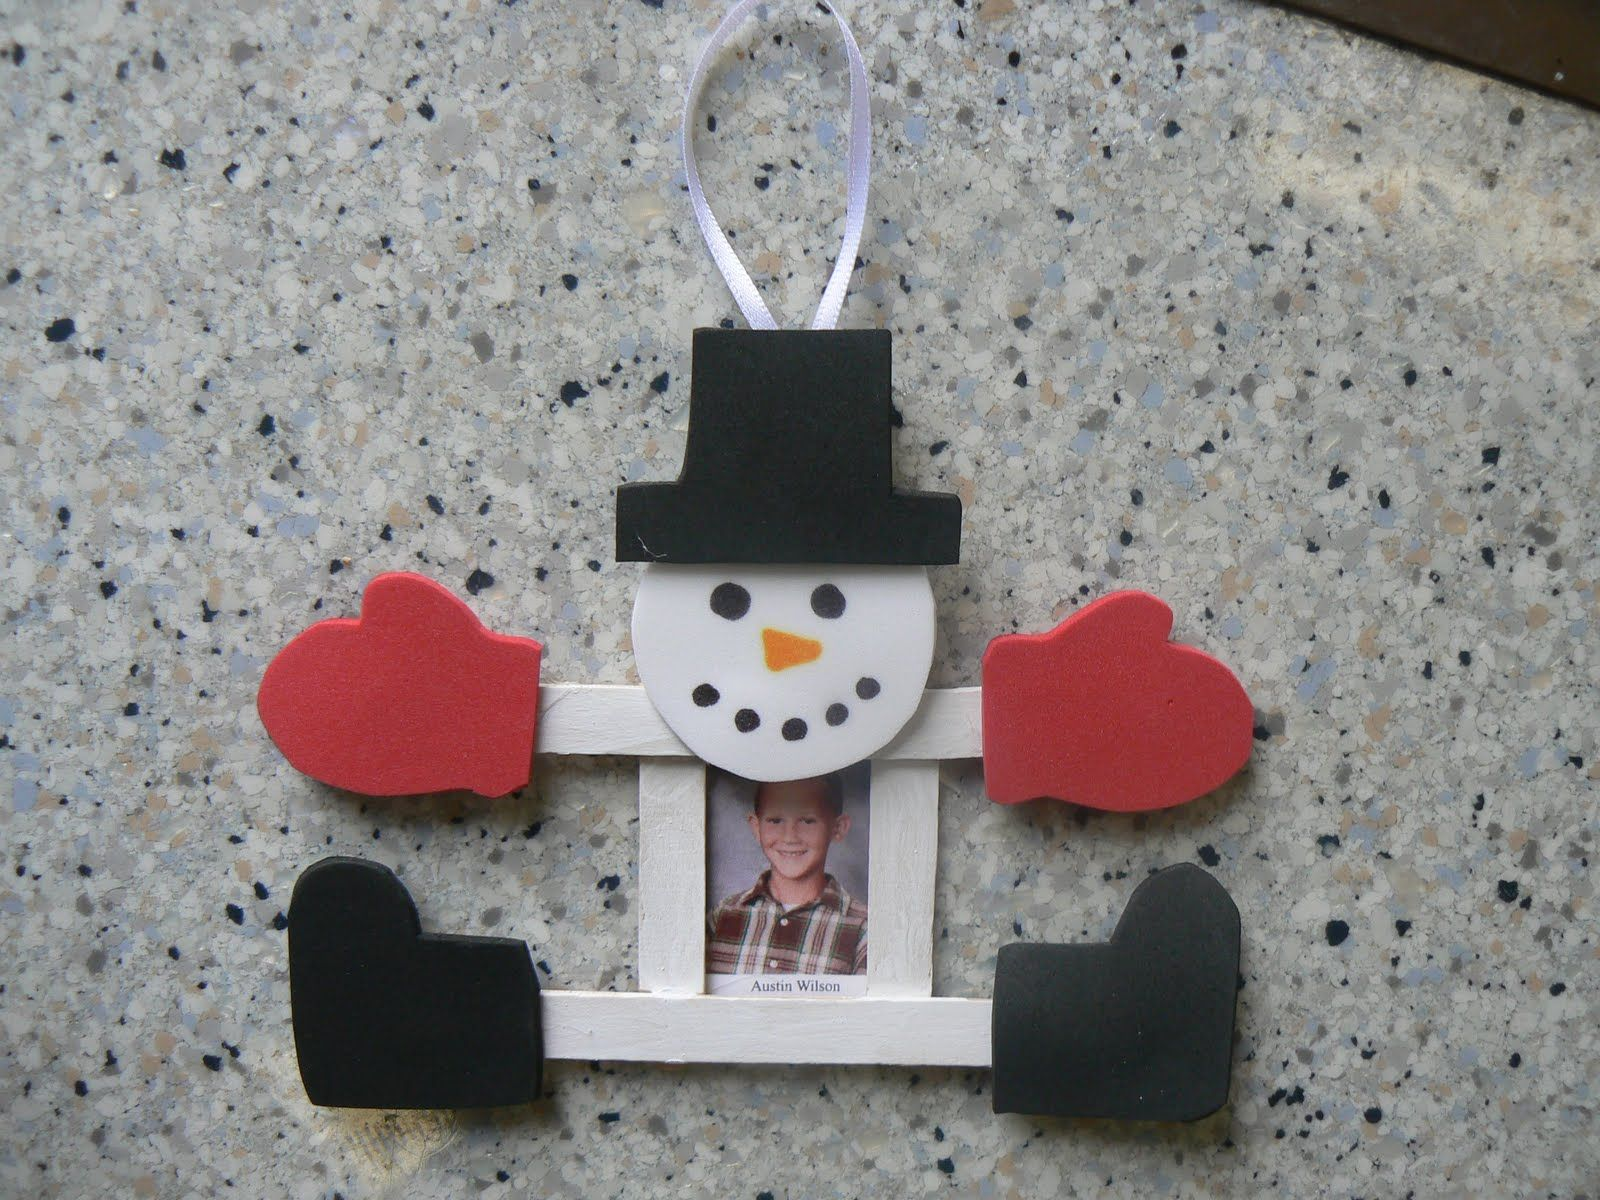 2nd Grade Christmas Craft Ideas Part - 30: Very Cute Christmas Ornament Project With The Kids Mrs. Tu0027s First Grade  Class: Christmas Ornaments